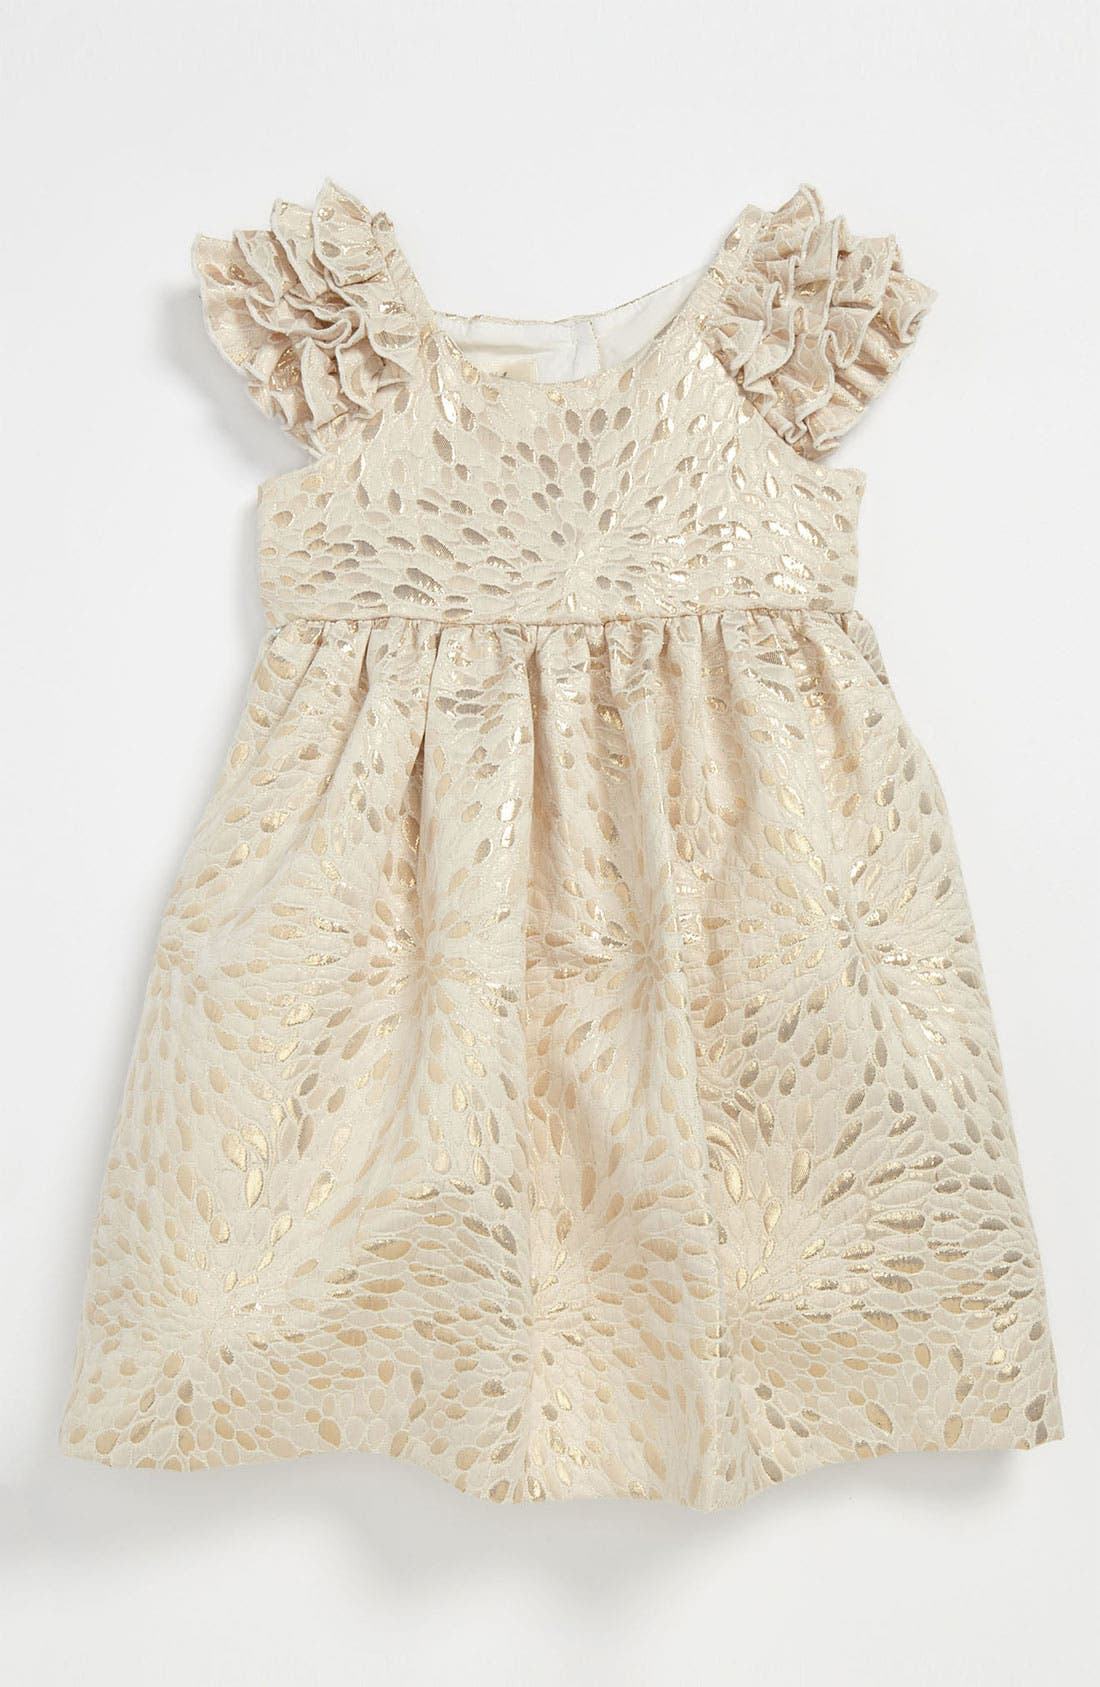 Alternate Image 1 Selected - Laura Ashley Brocade Dress (Toddler)